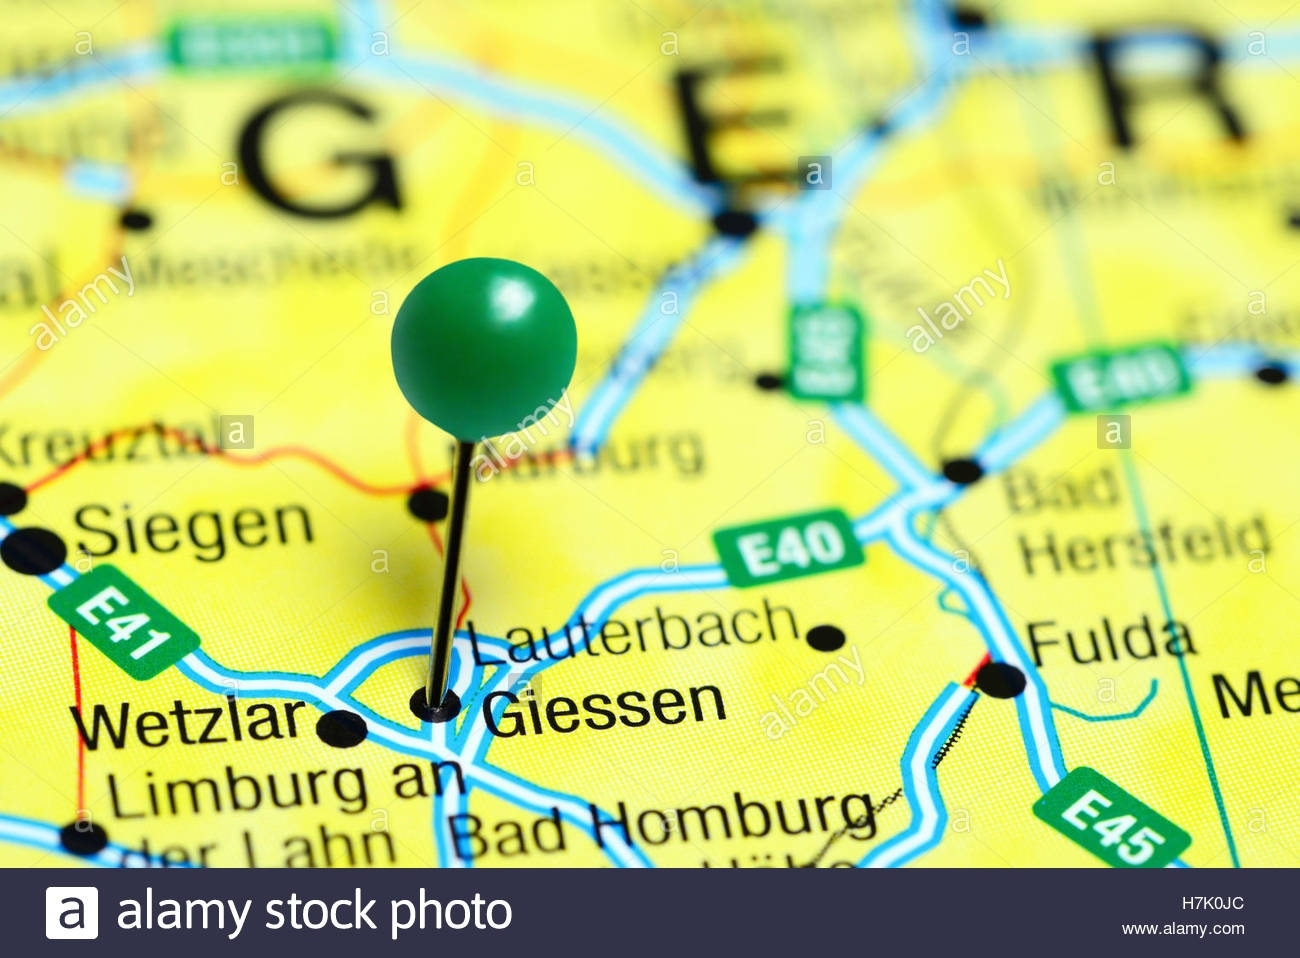 Giessen Pinned On A Map Of Germany Stock Photo: 125192772 - Alamy with regard to Giessen Germany Map